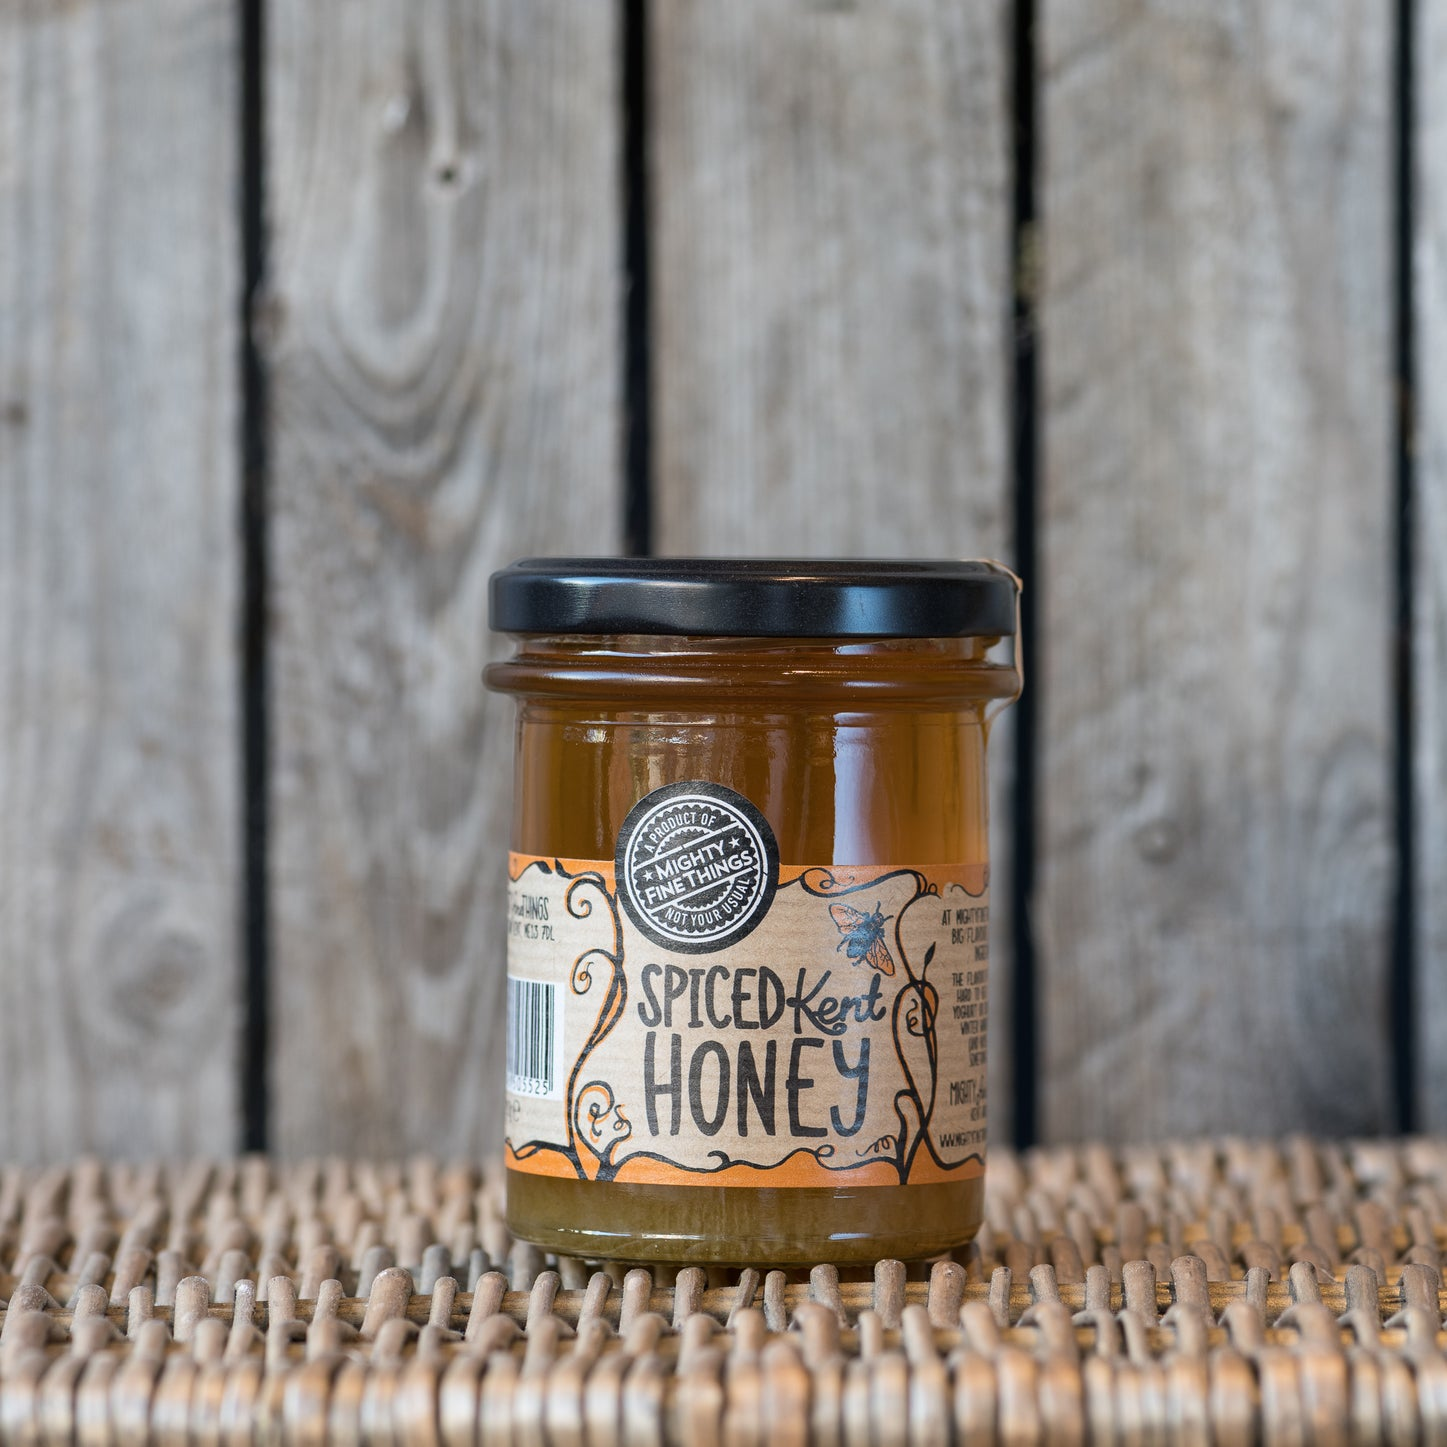 Spiced Kent Honey